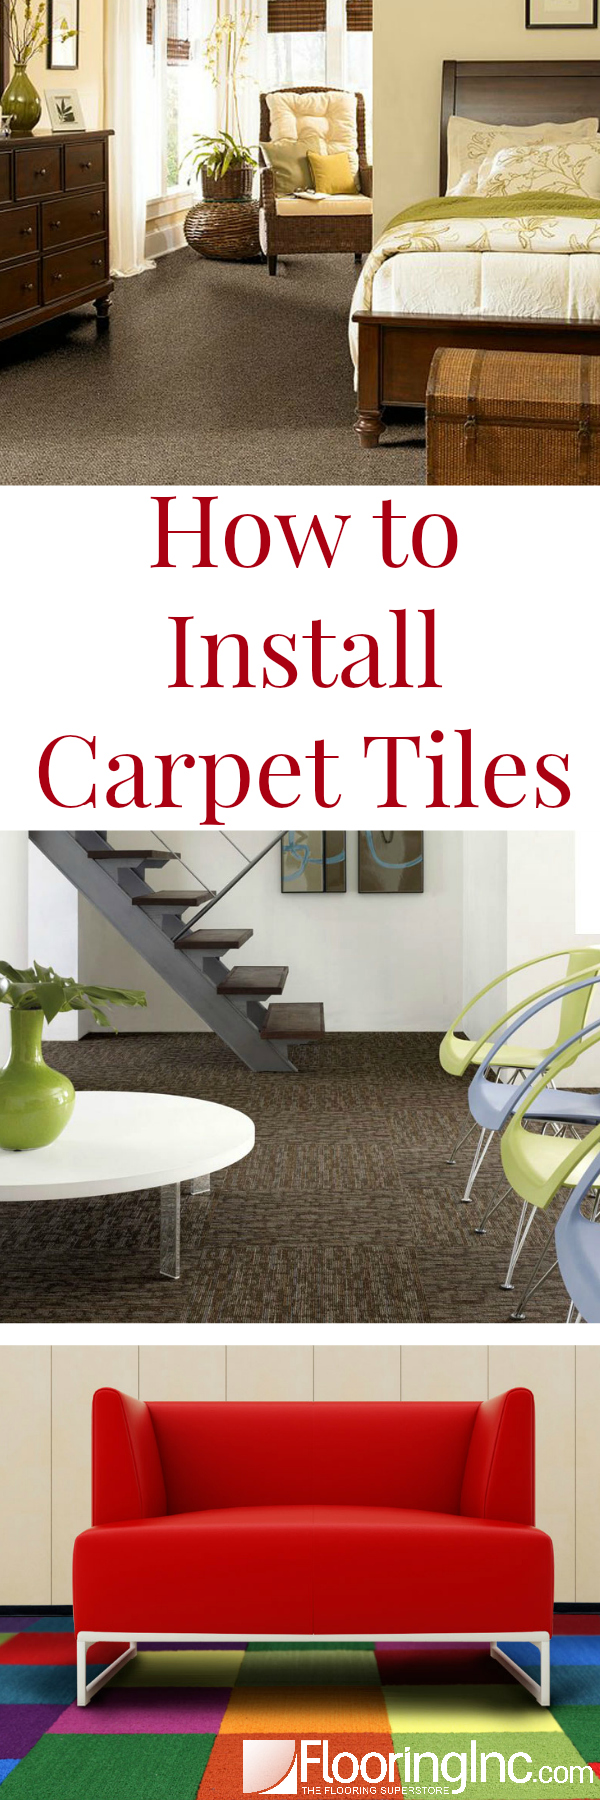 How to Install Carpet Tiles in 4 easy steps!